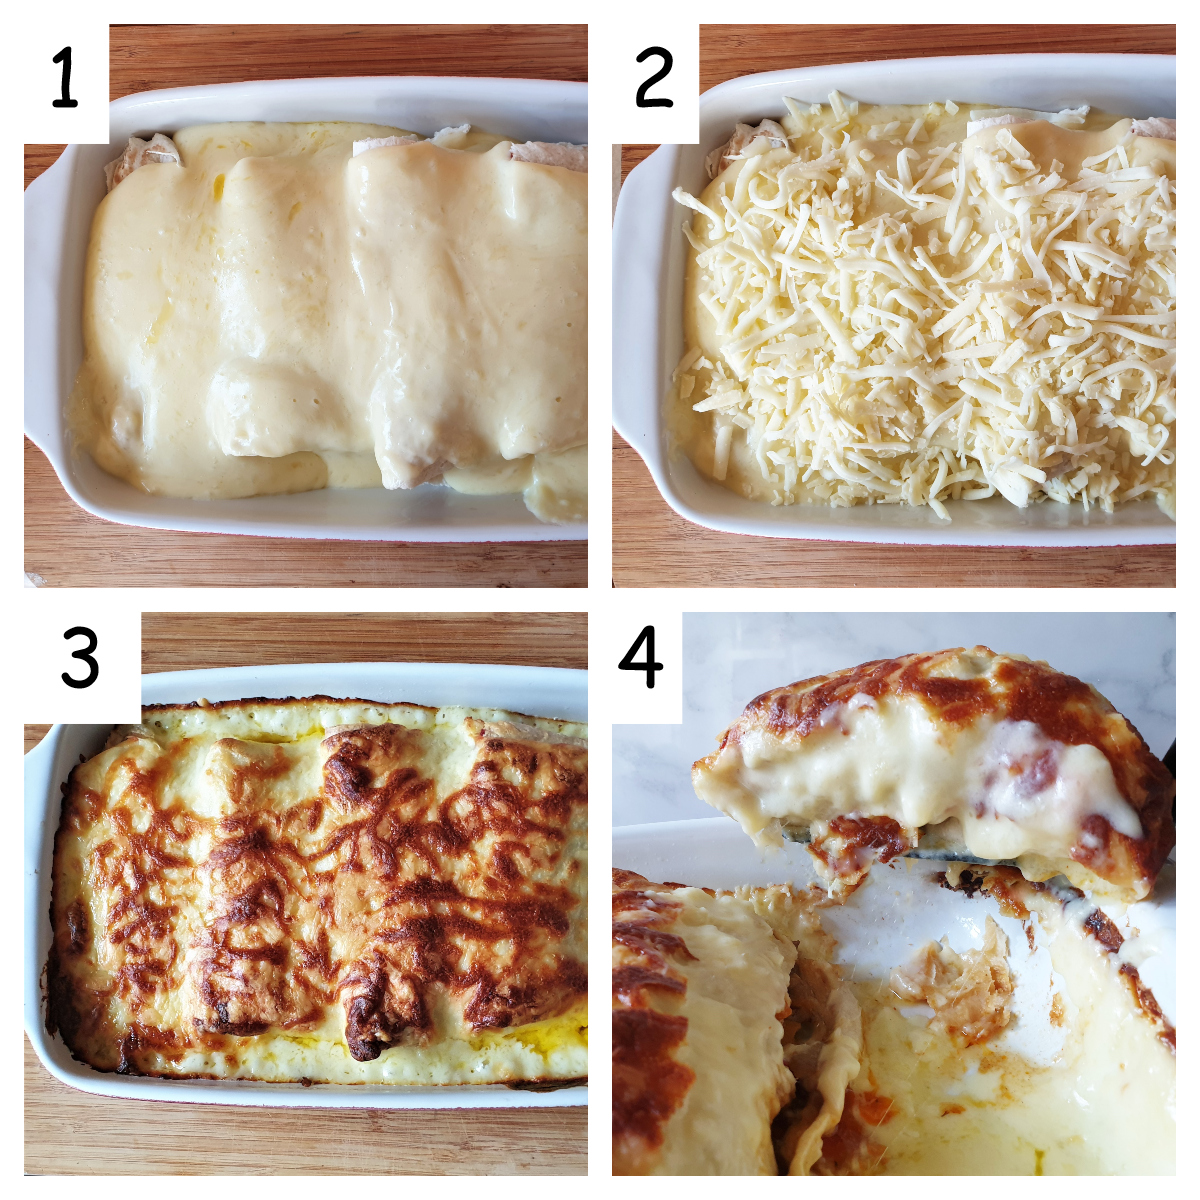 Collage showing steps for assembling turkey fajitas for oven.